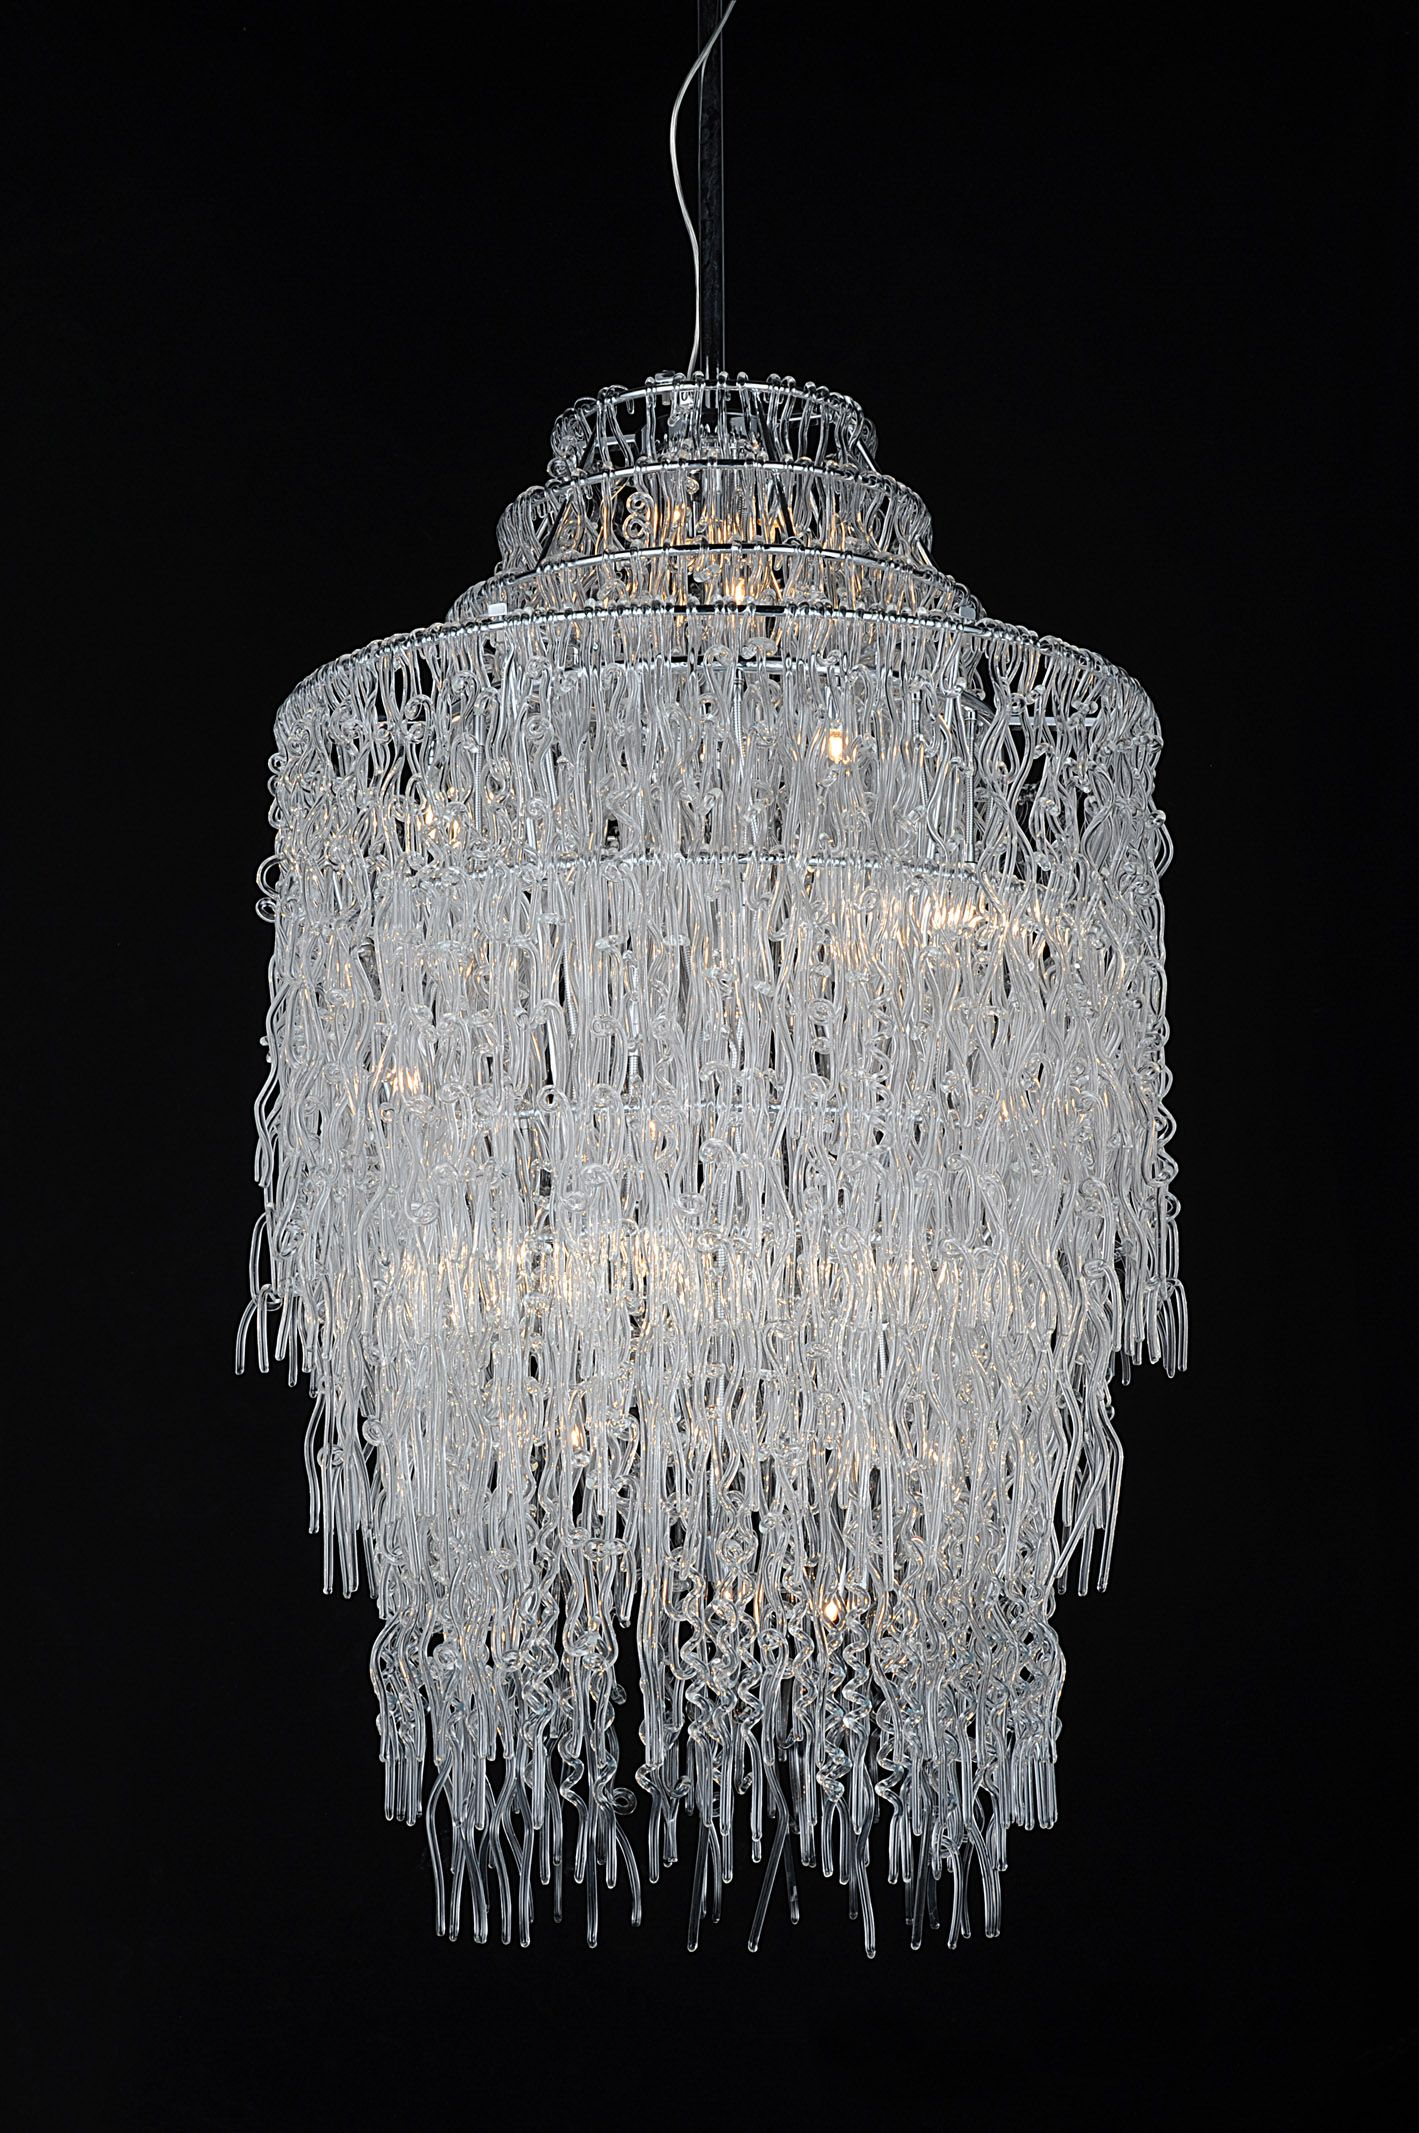 Nothing brighter than glass chandeliers